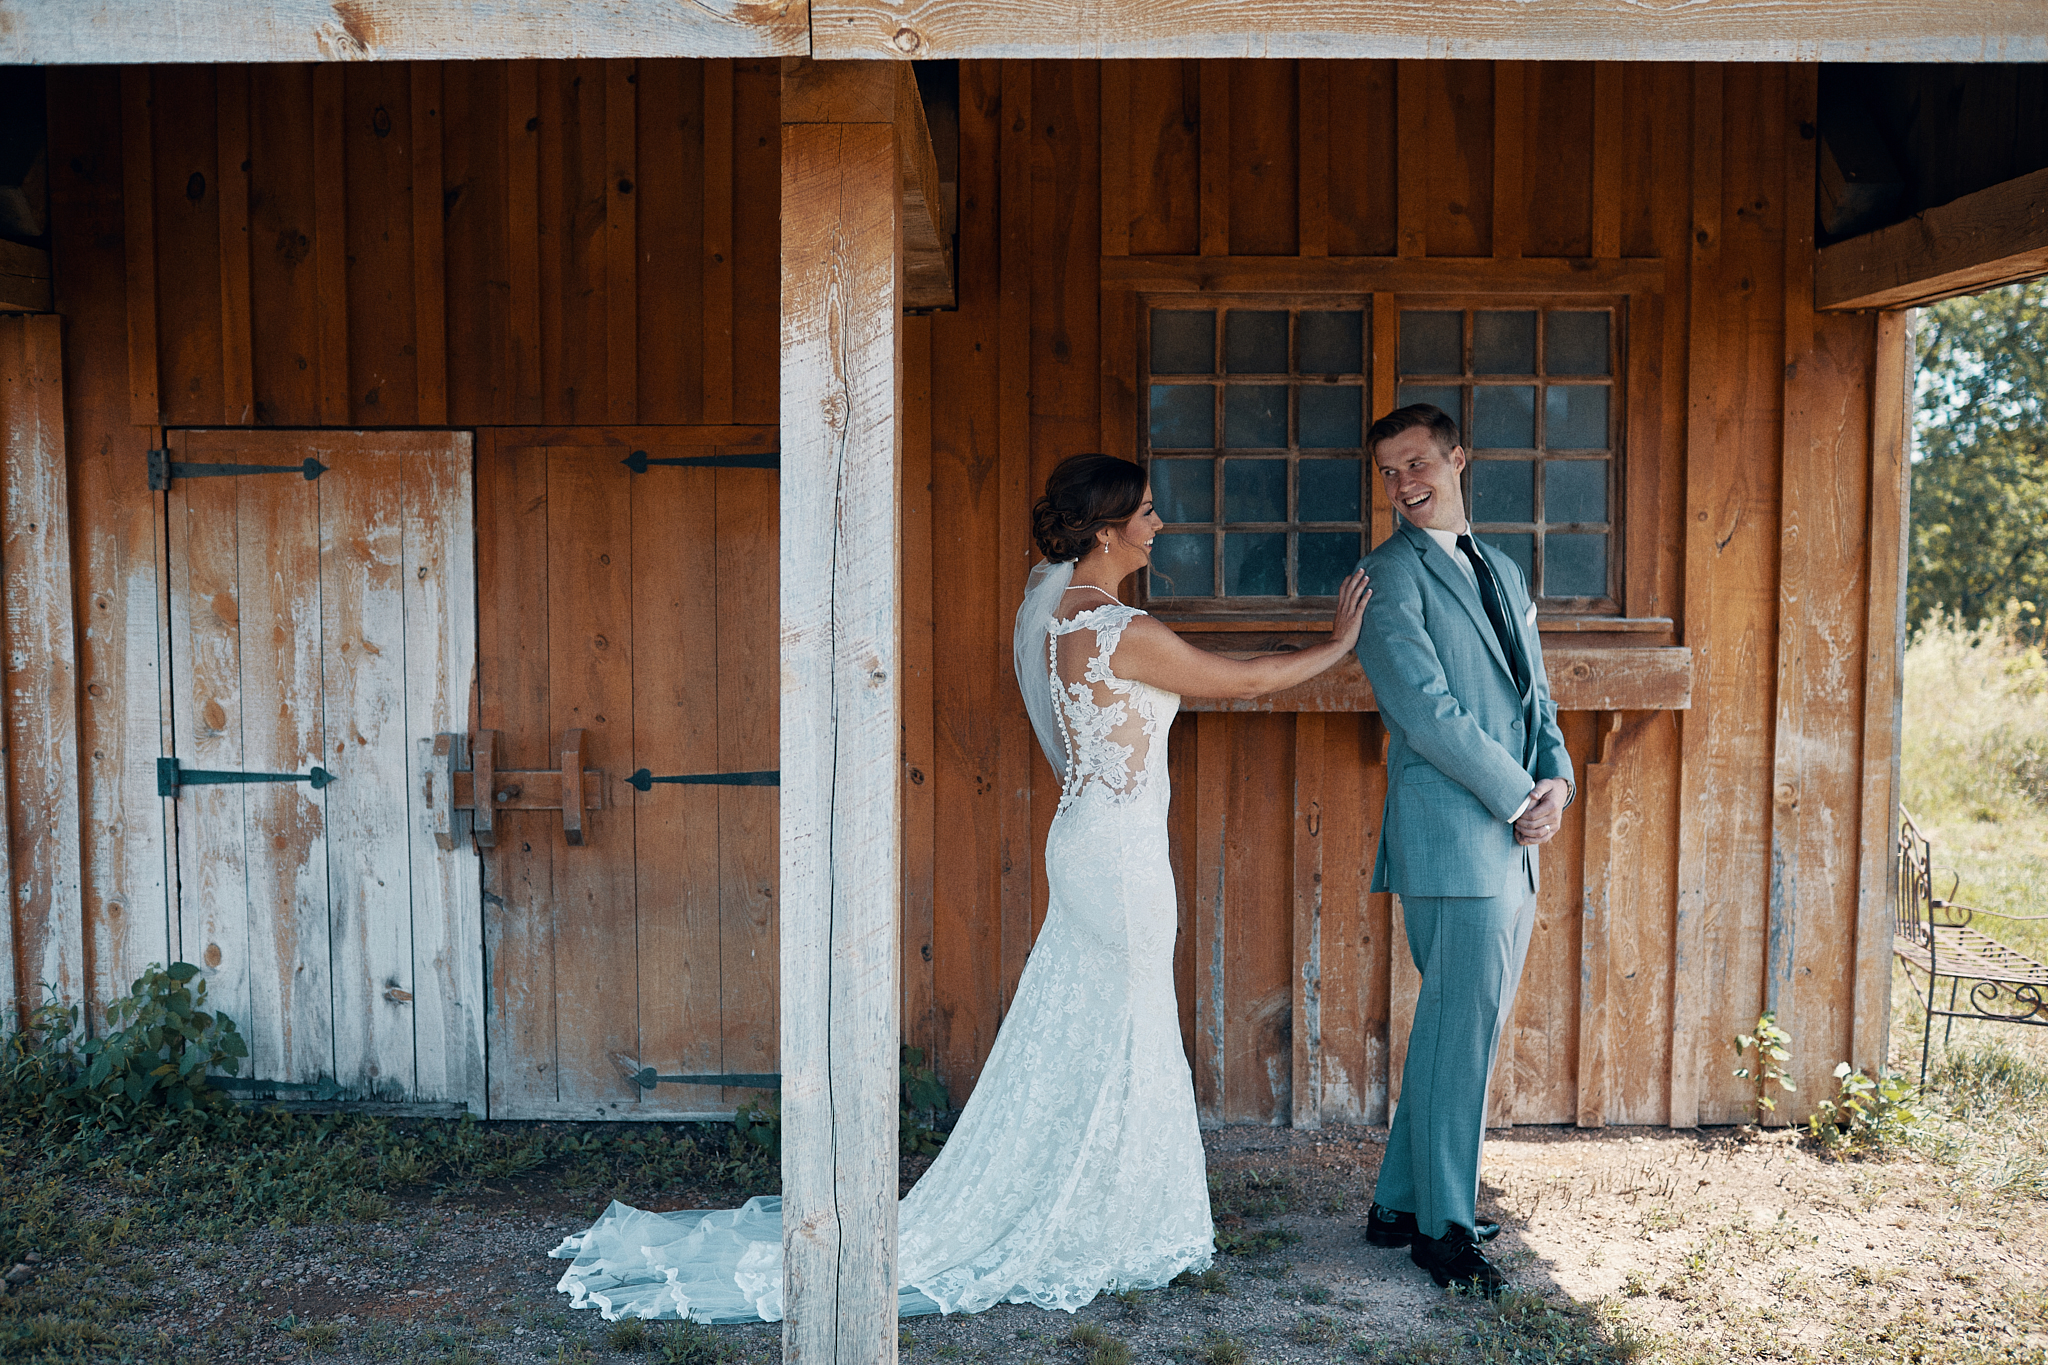 Perfect_Wedding_Photography_At_Outpost_Center_Chaska_By_High_End_Minneapolis_Brand_Photographer_Something_Candid_038.JPG